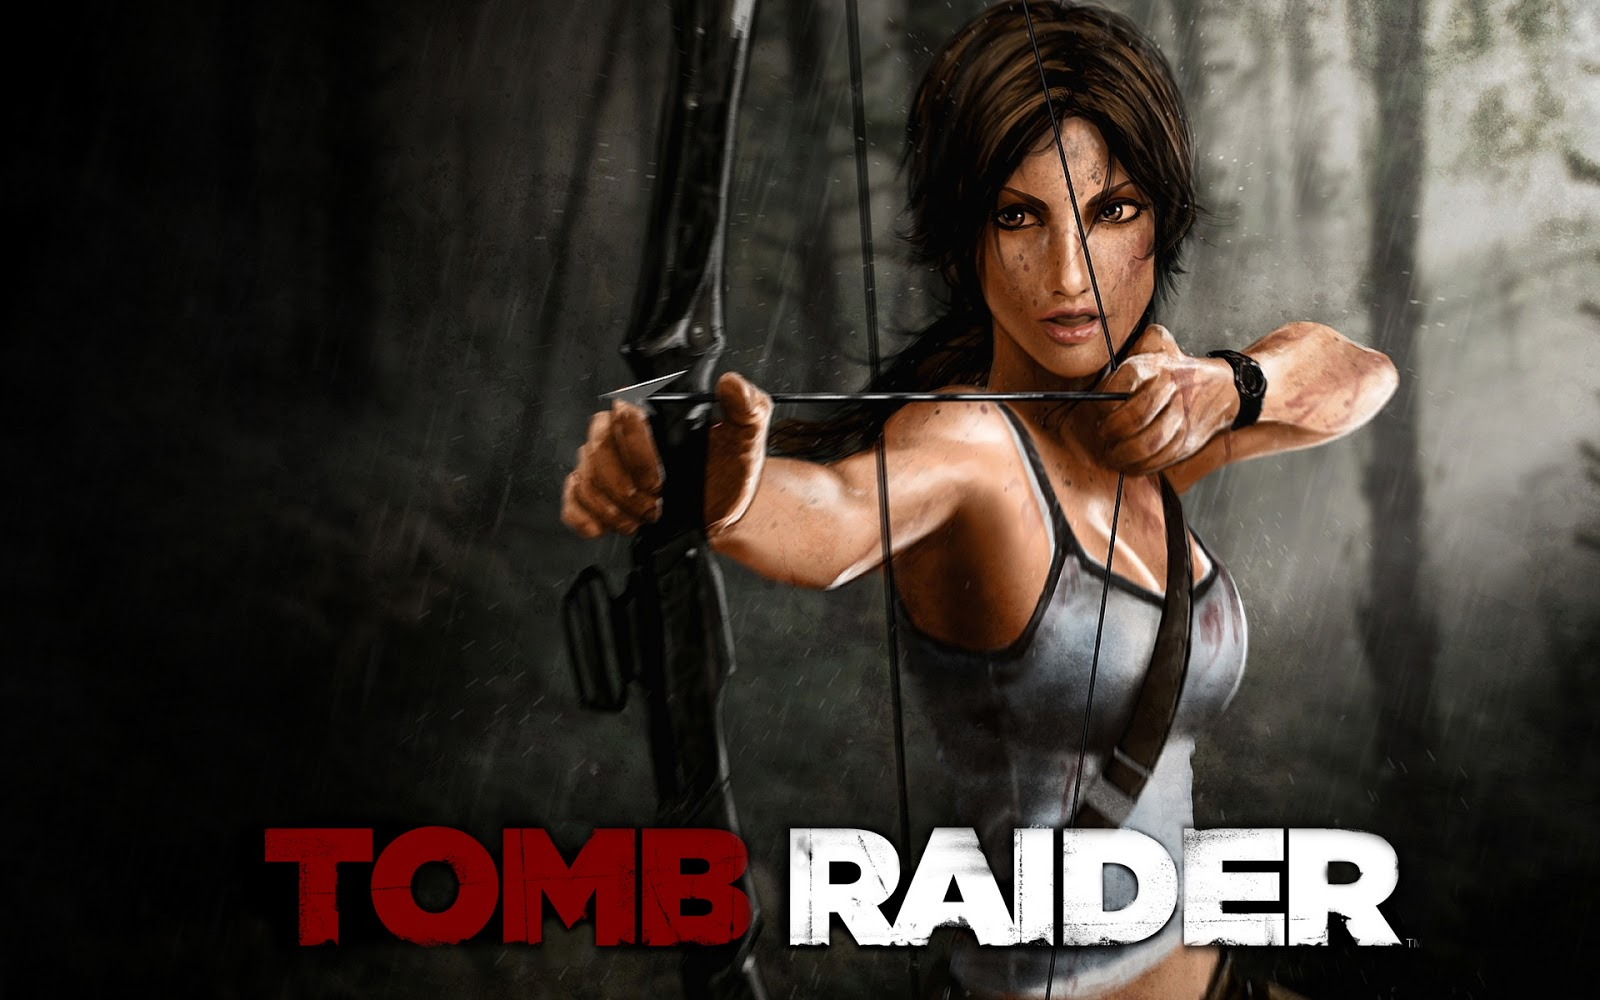 Trainer of tomb raider 2013 to make  nude scenes